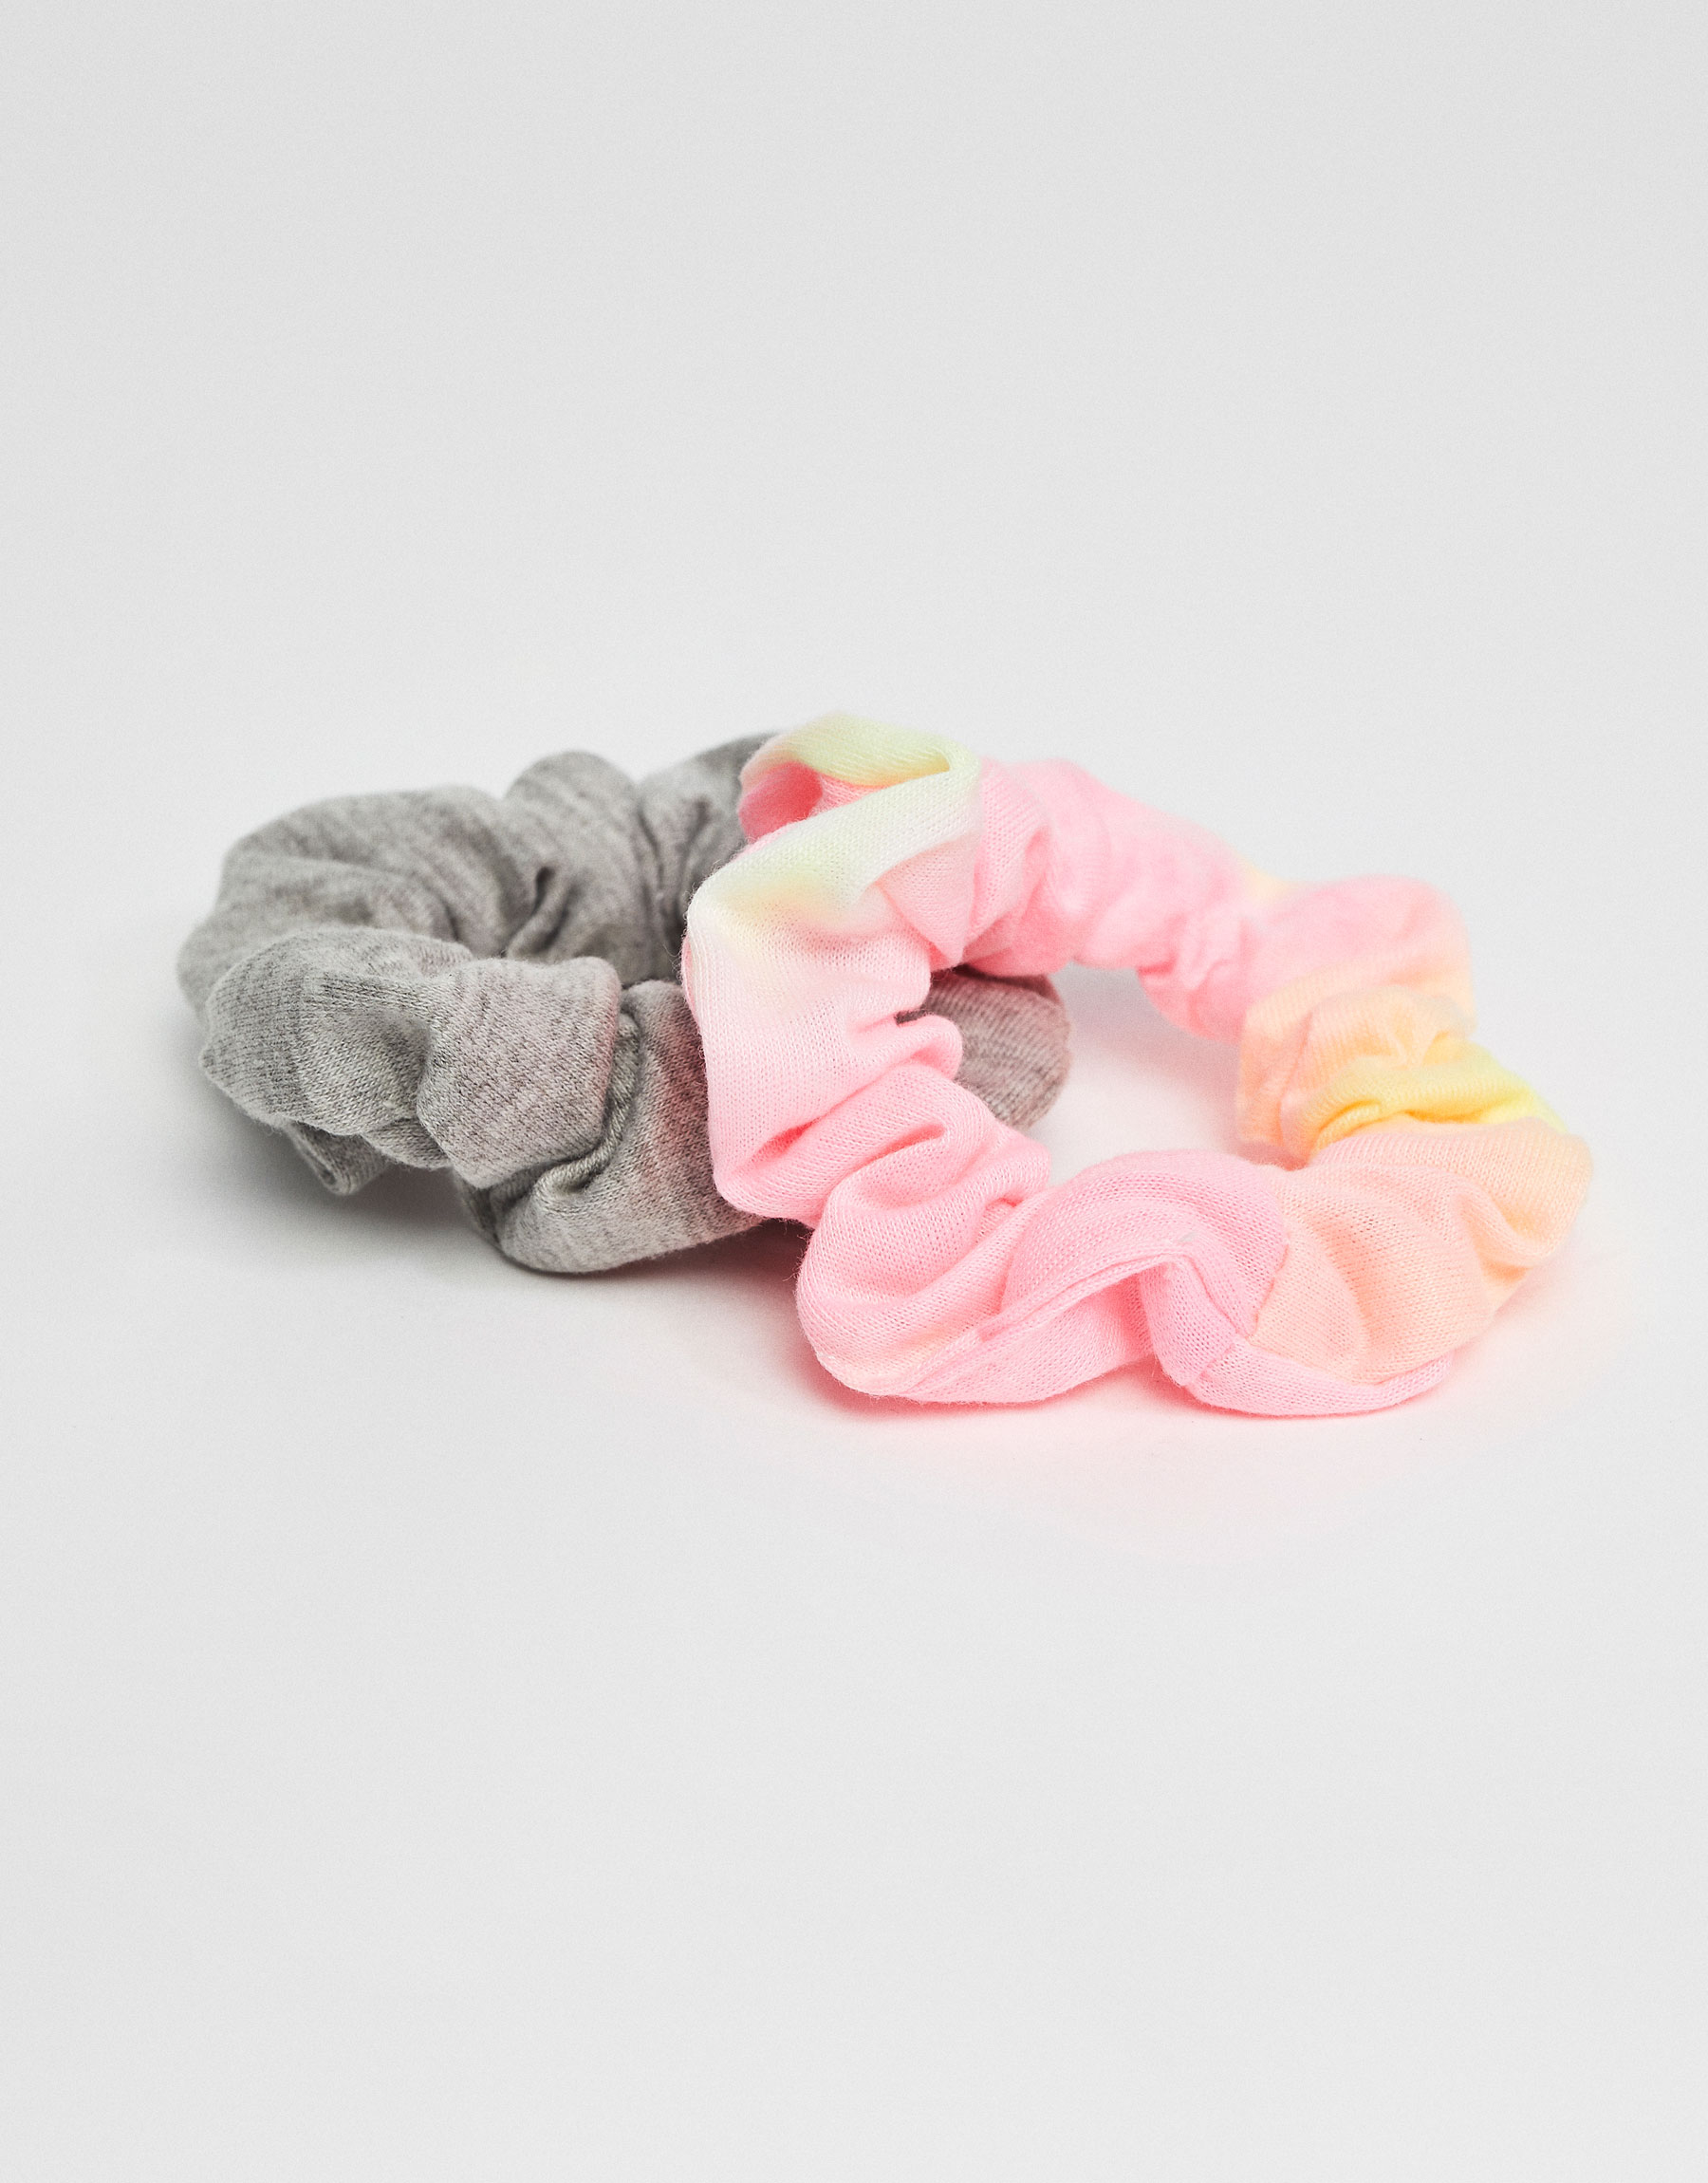 2-pack of tie-dye scrunchies